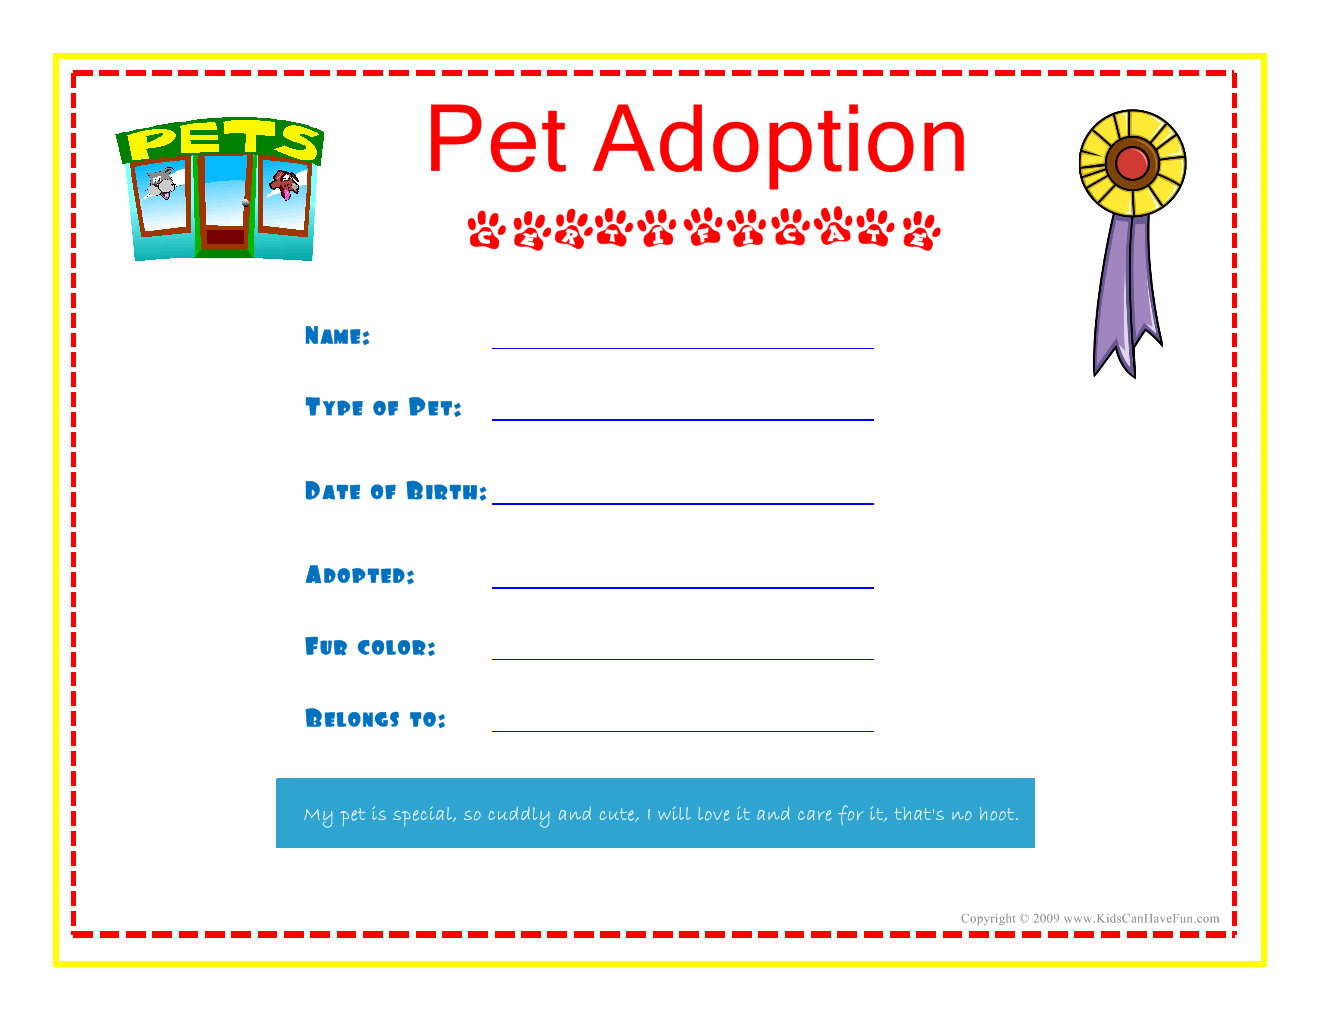 Pet Adoption Certificate For The Kids To Fill Out About Their Pet - Free Printable Stuffed Animal Adoption Certificate